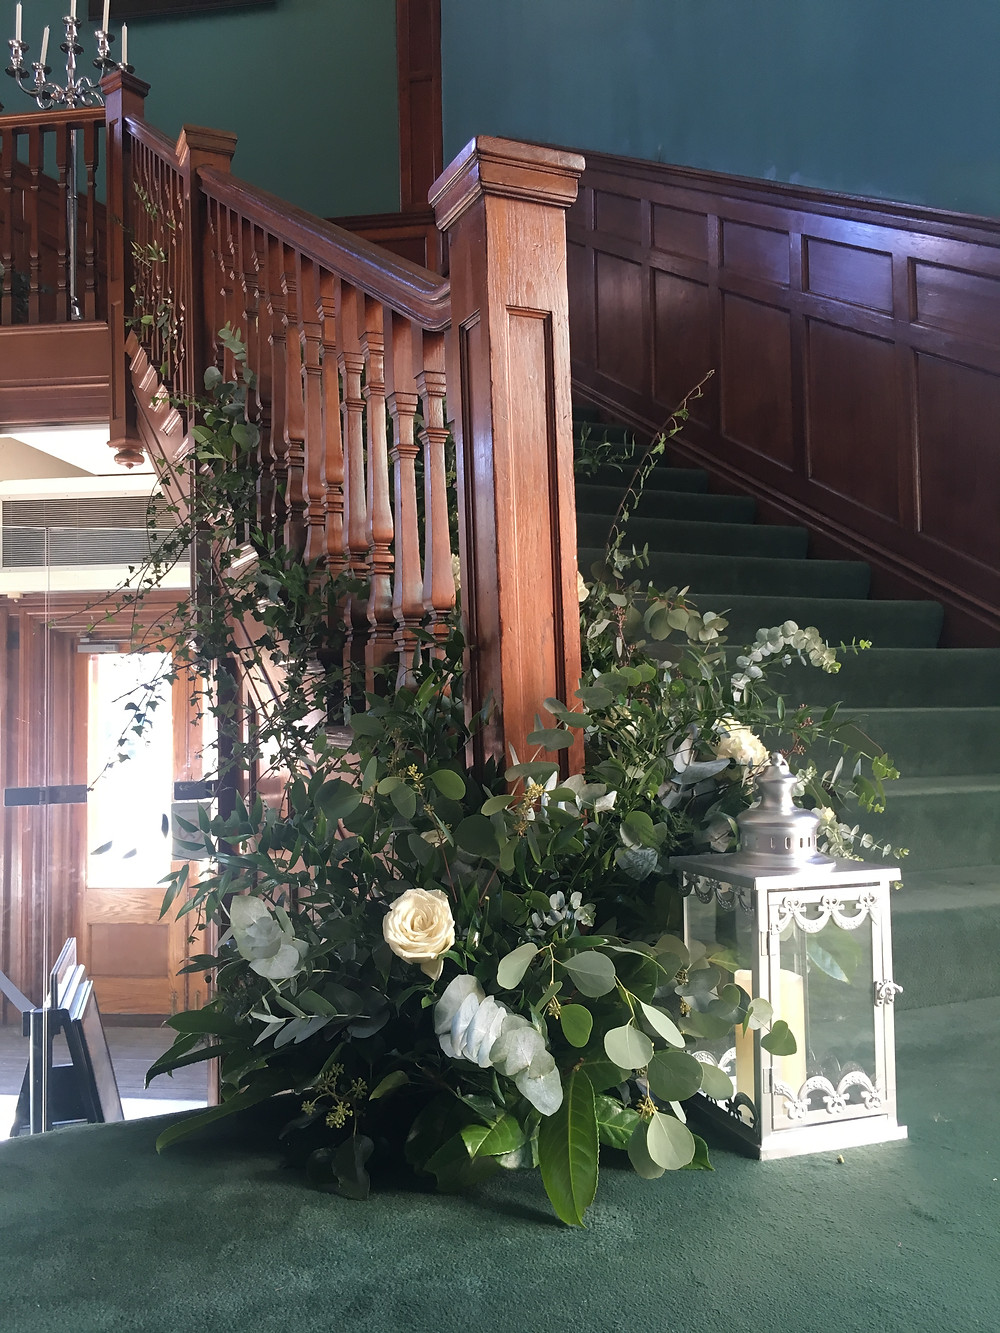 statement floral staircase arrangement white roses and foliage